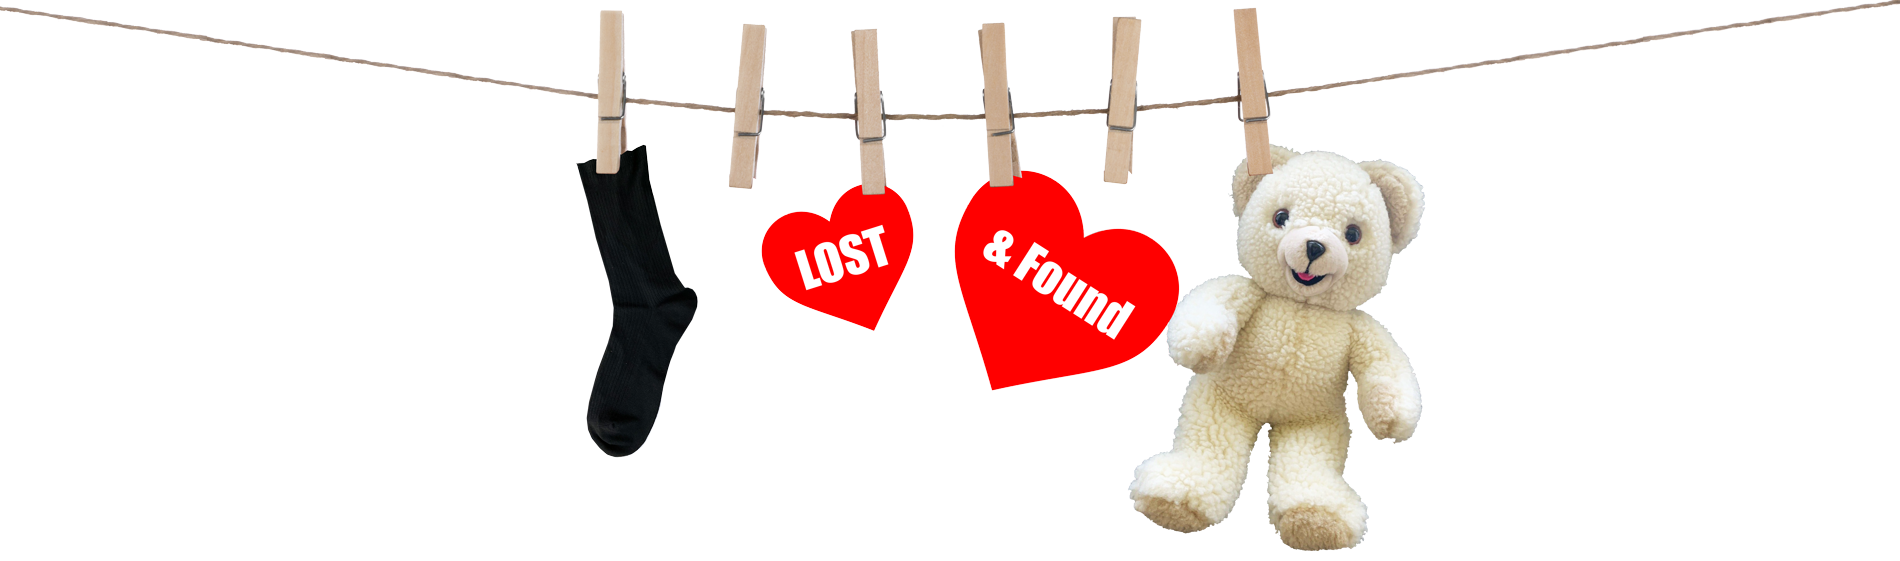 Spot's Lost and Found page